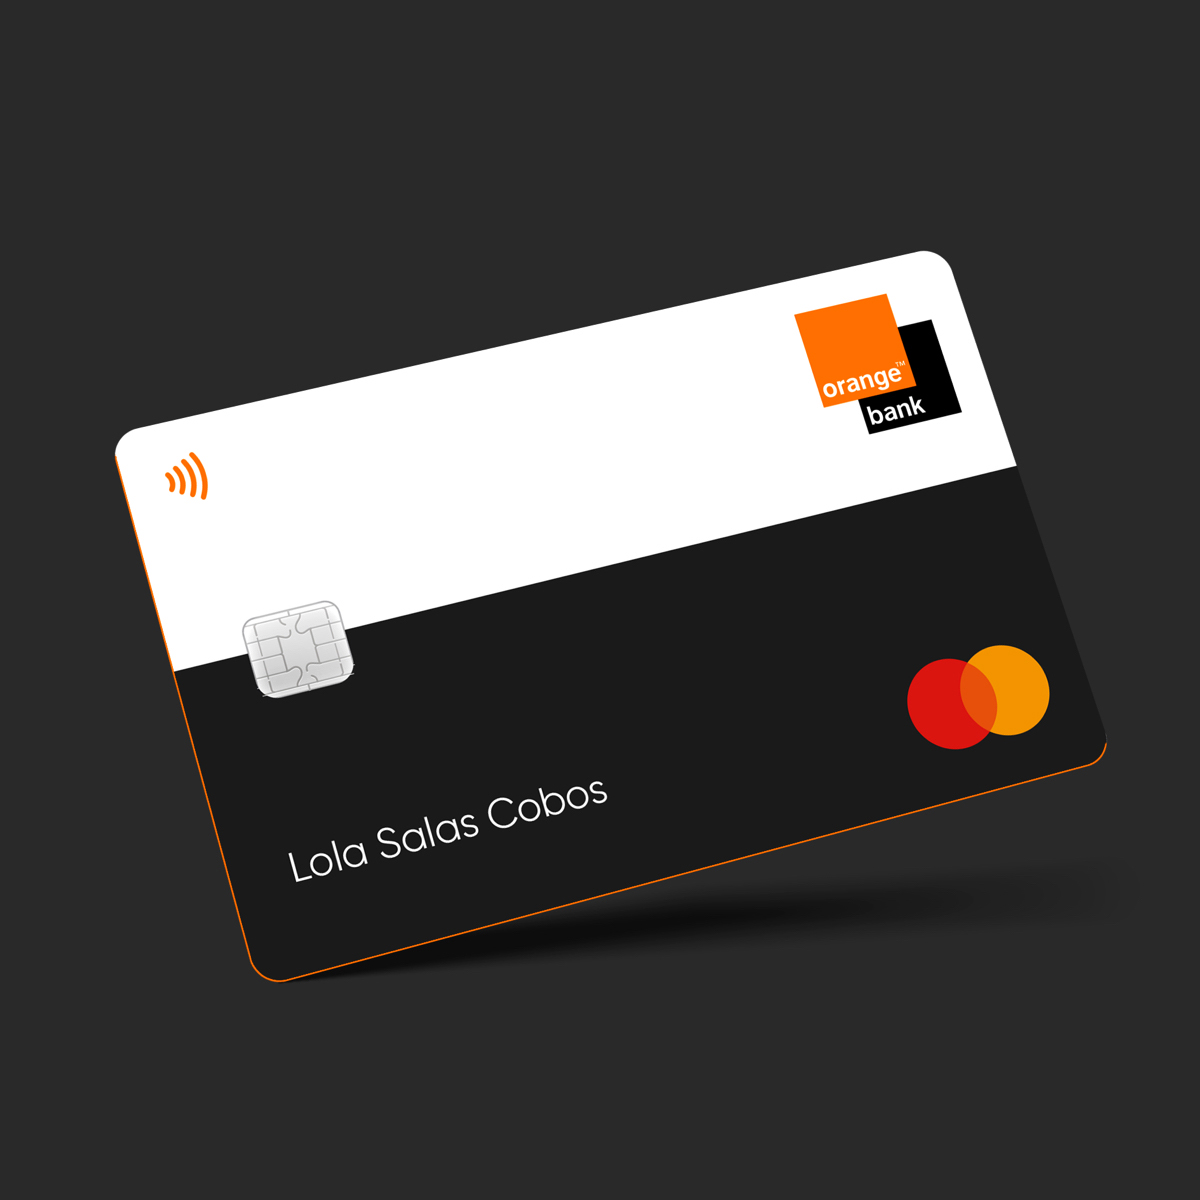 Orange Bank rolls out digital debit card in Spain